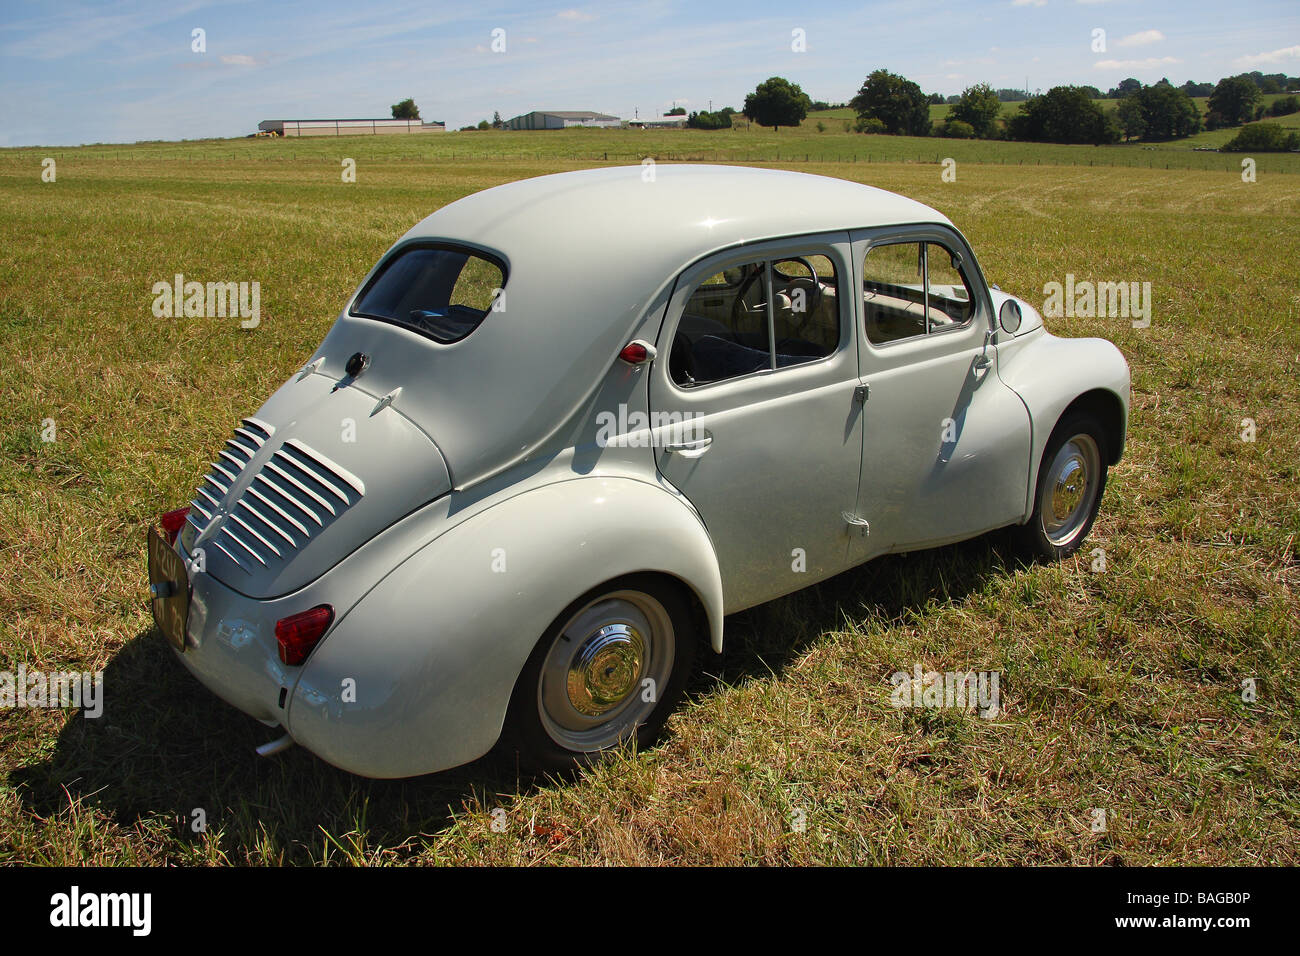 a well restored 1961 renault 4cv modele affair in a field